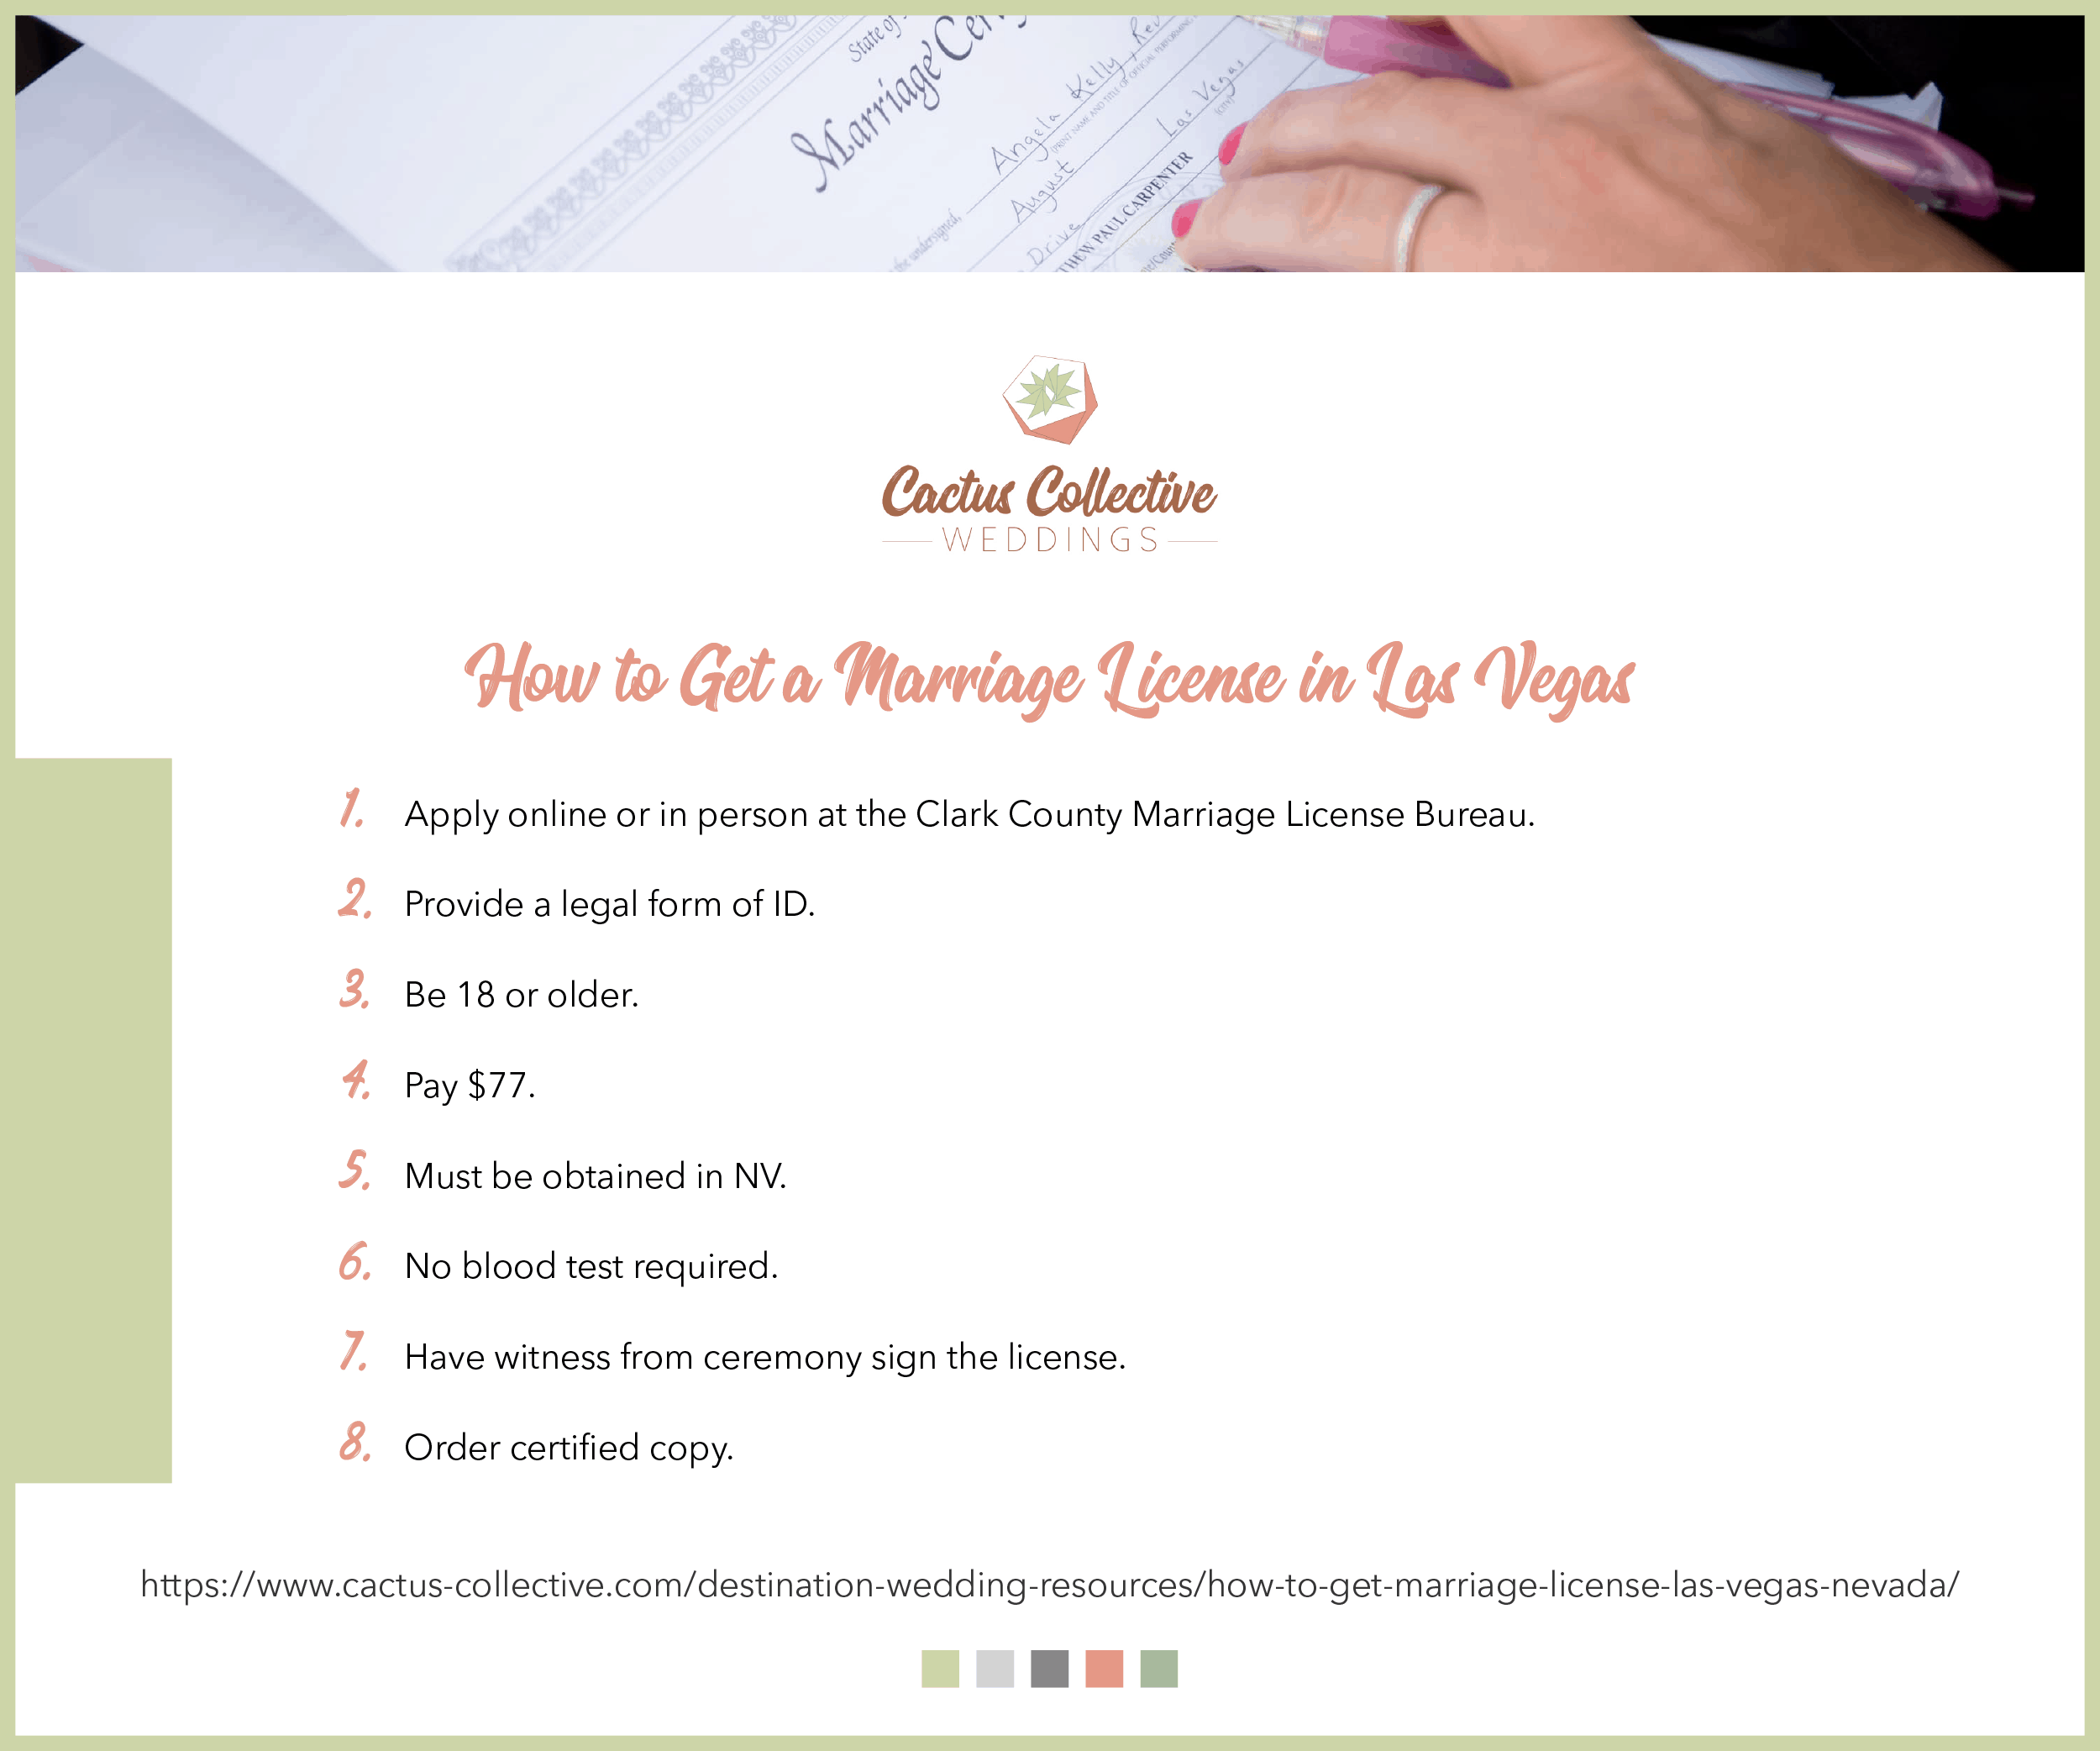 Las Vegas Marriage License